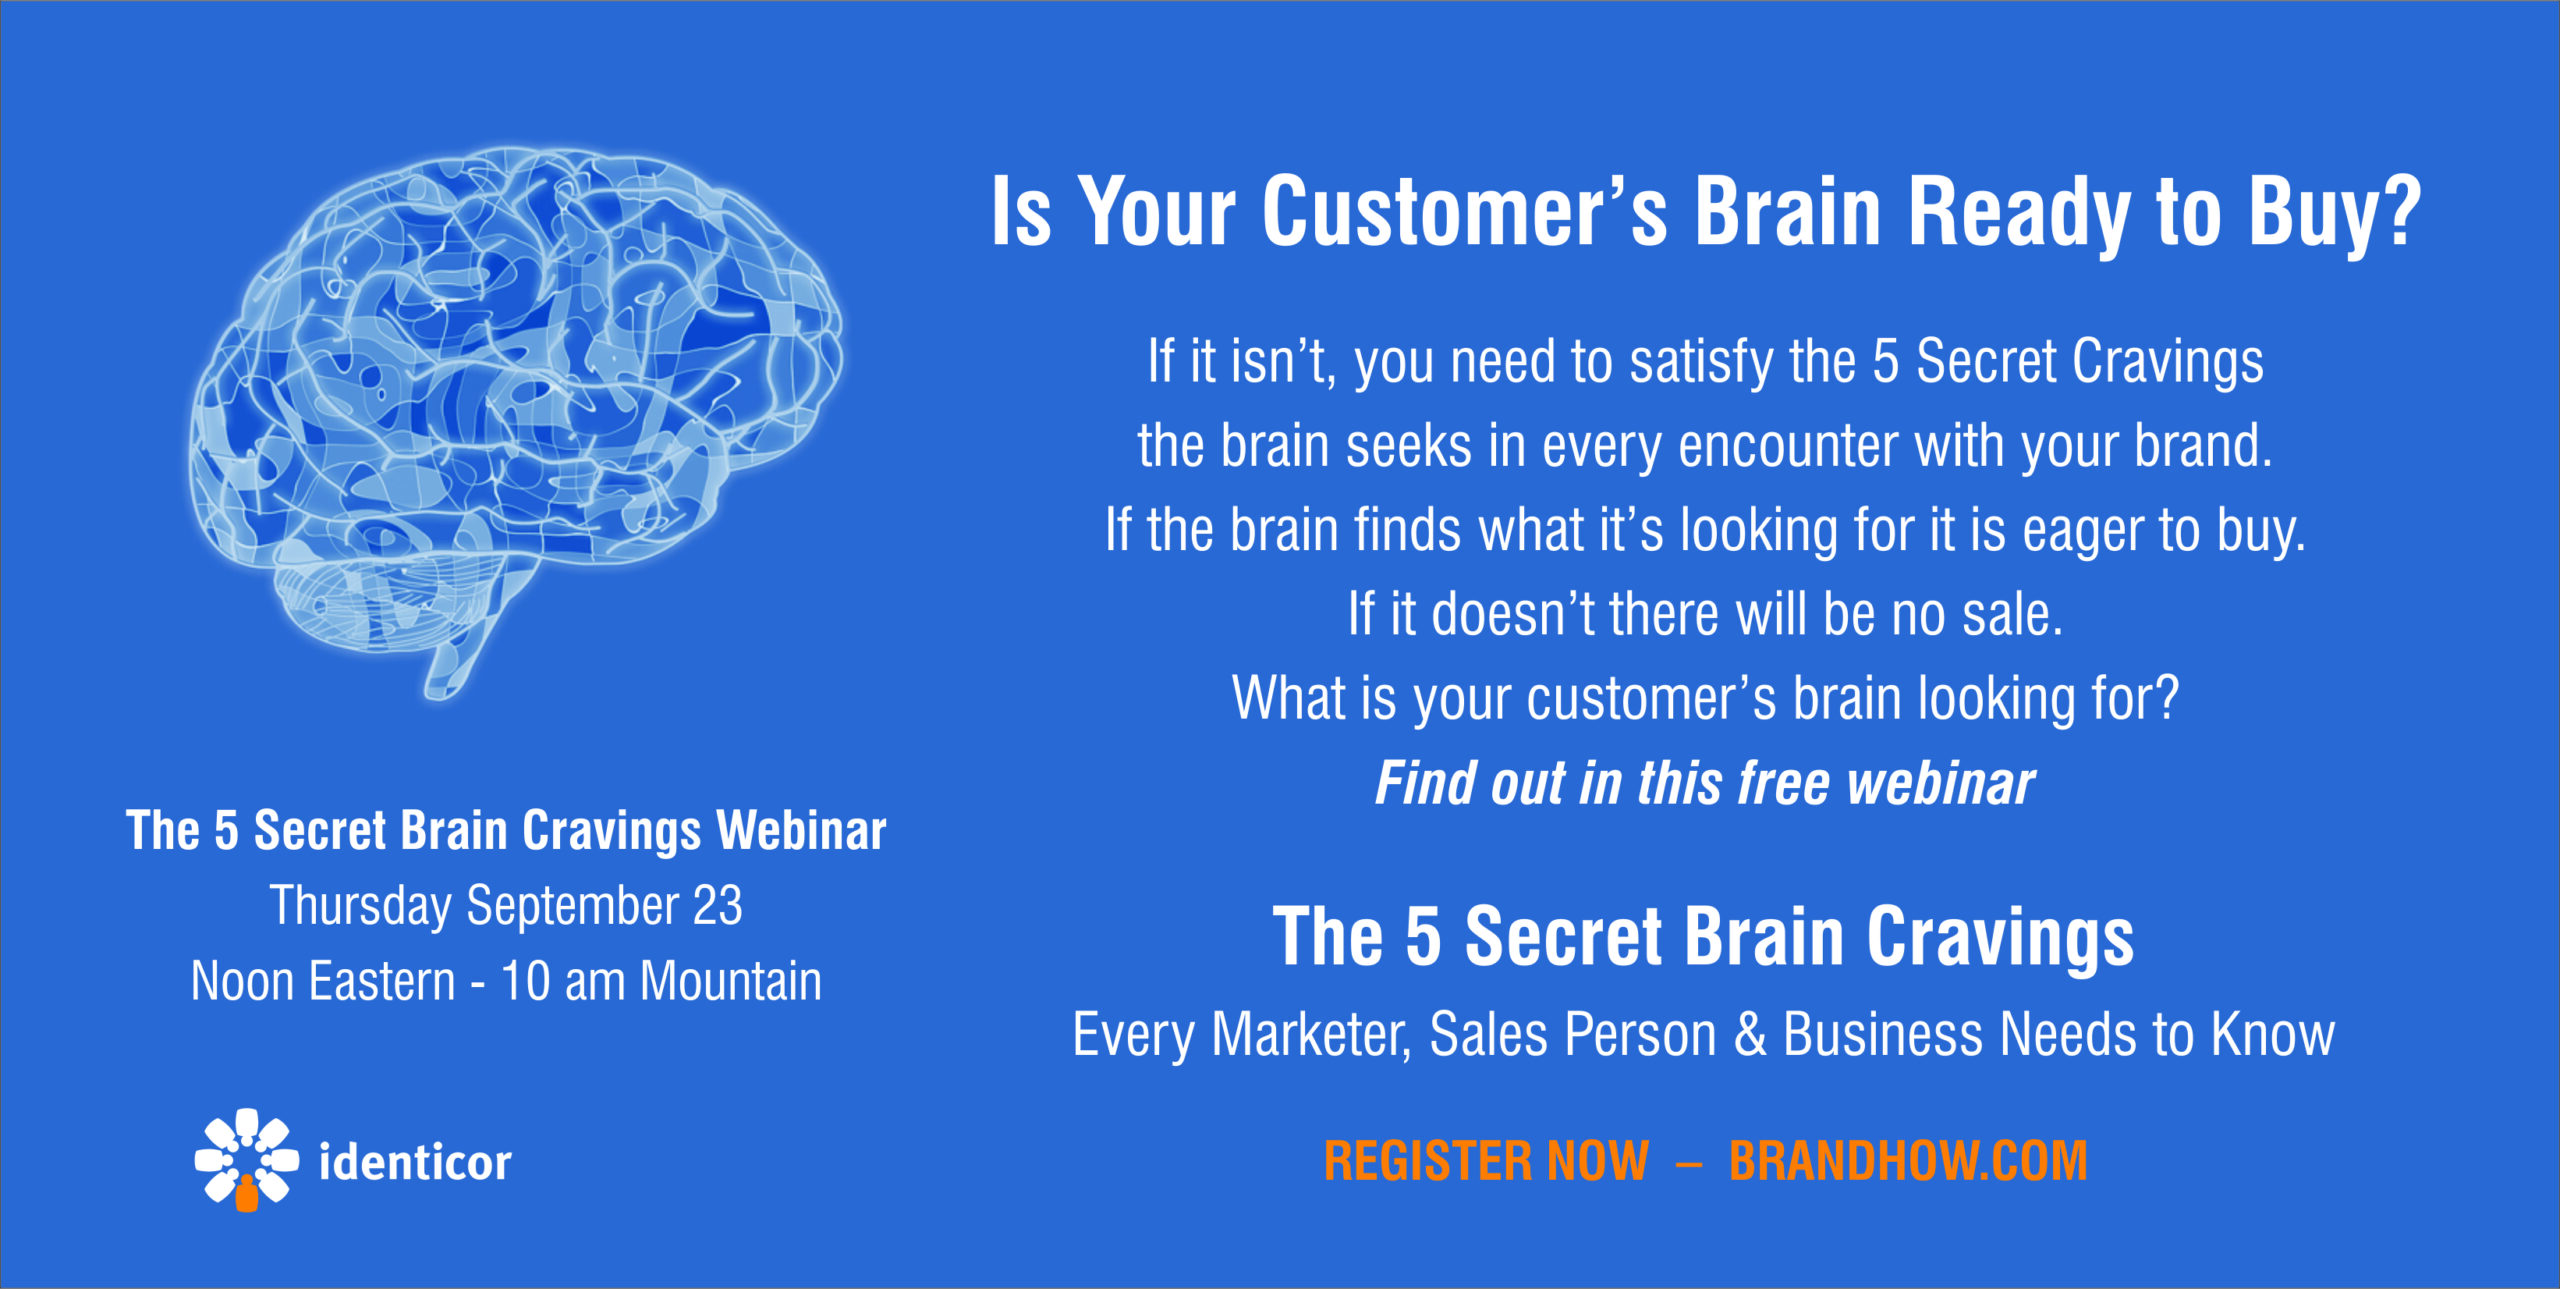 The 5 Secret Brain Cravings – Every Marketer, Sales Person & Business Needs to Know